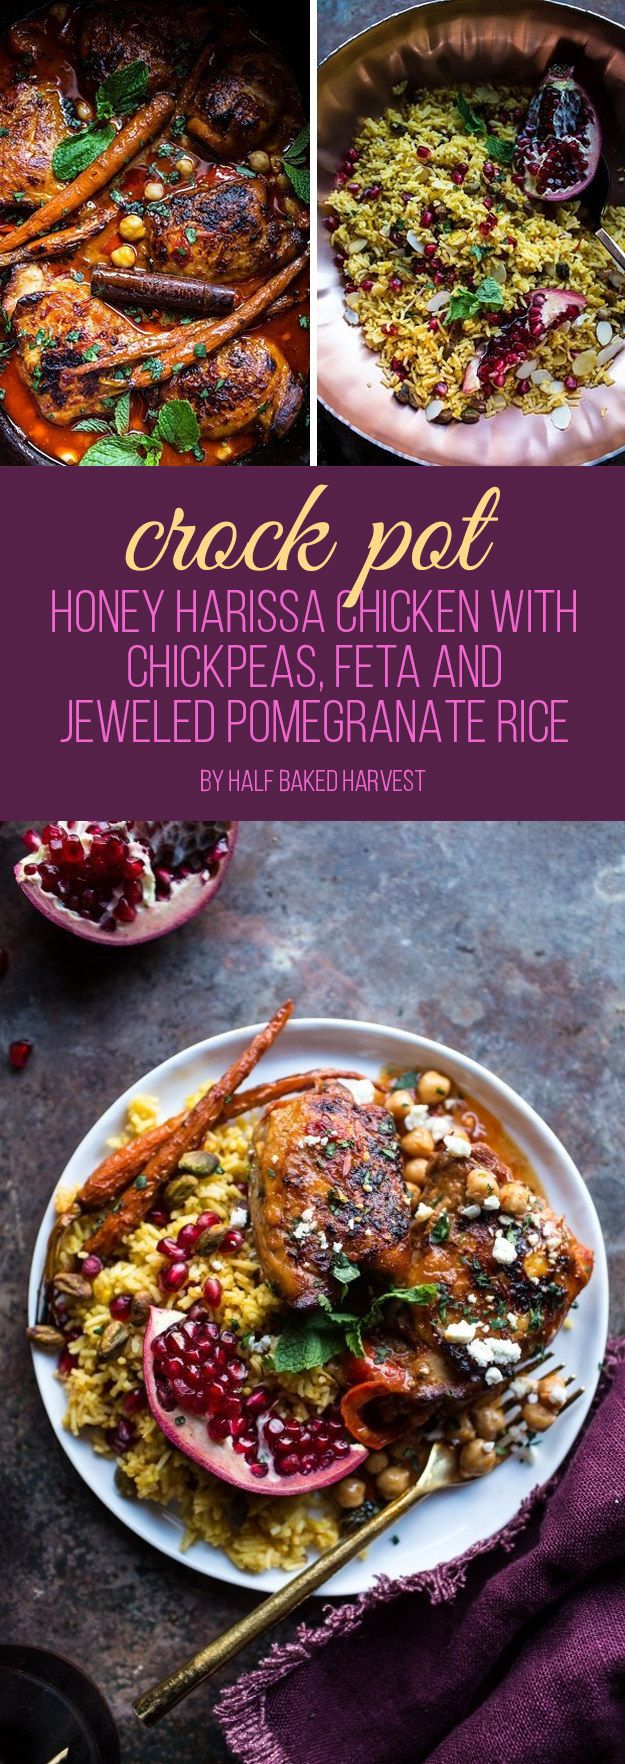 Crock Pot Honey Harissa Chicken with Chickpeas, Feta and Jeweled Pomegranate Rice